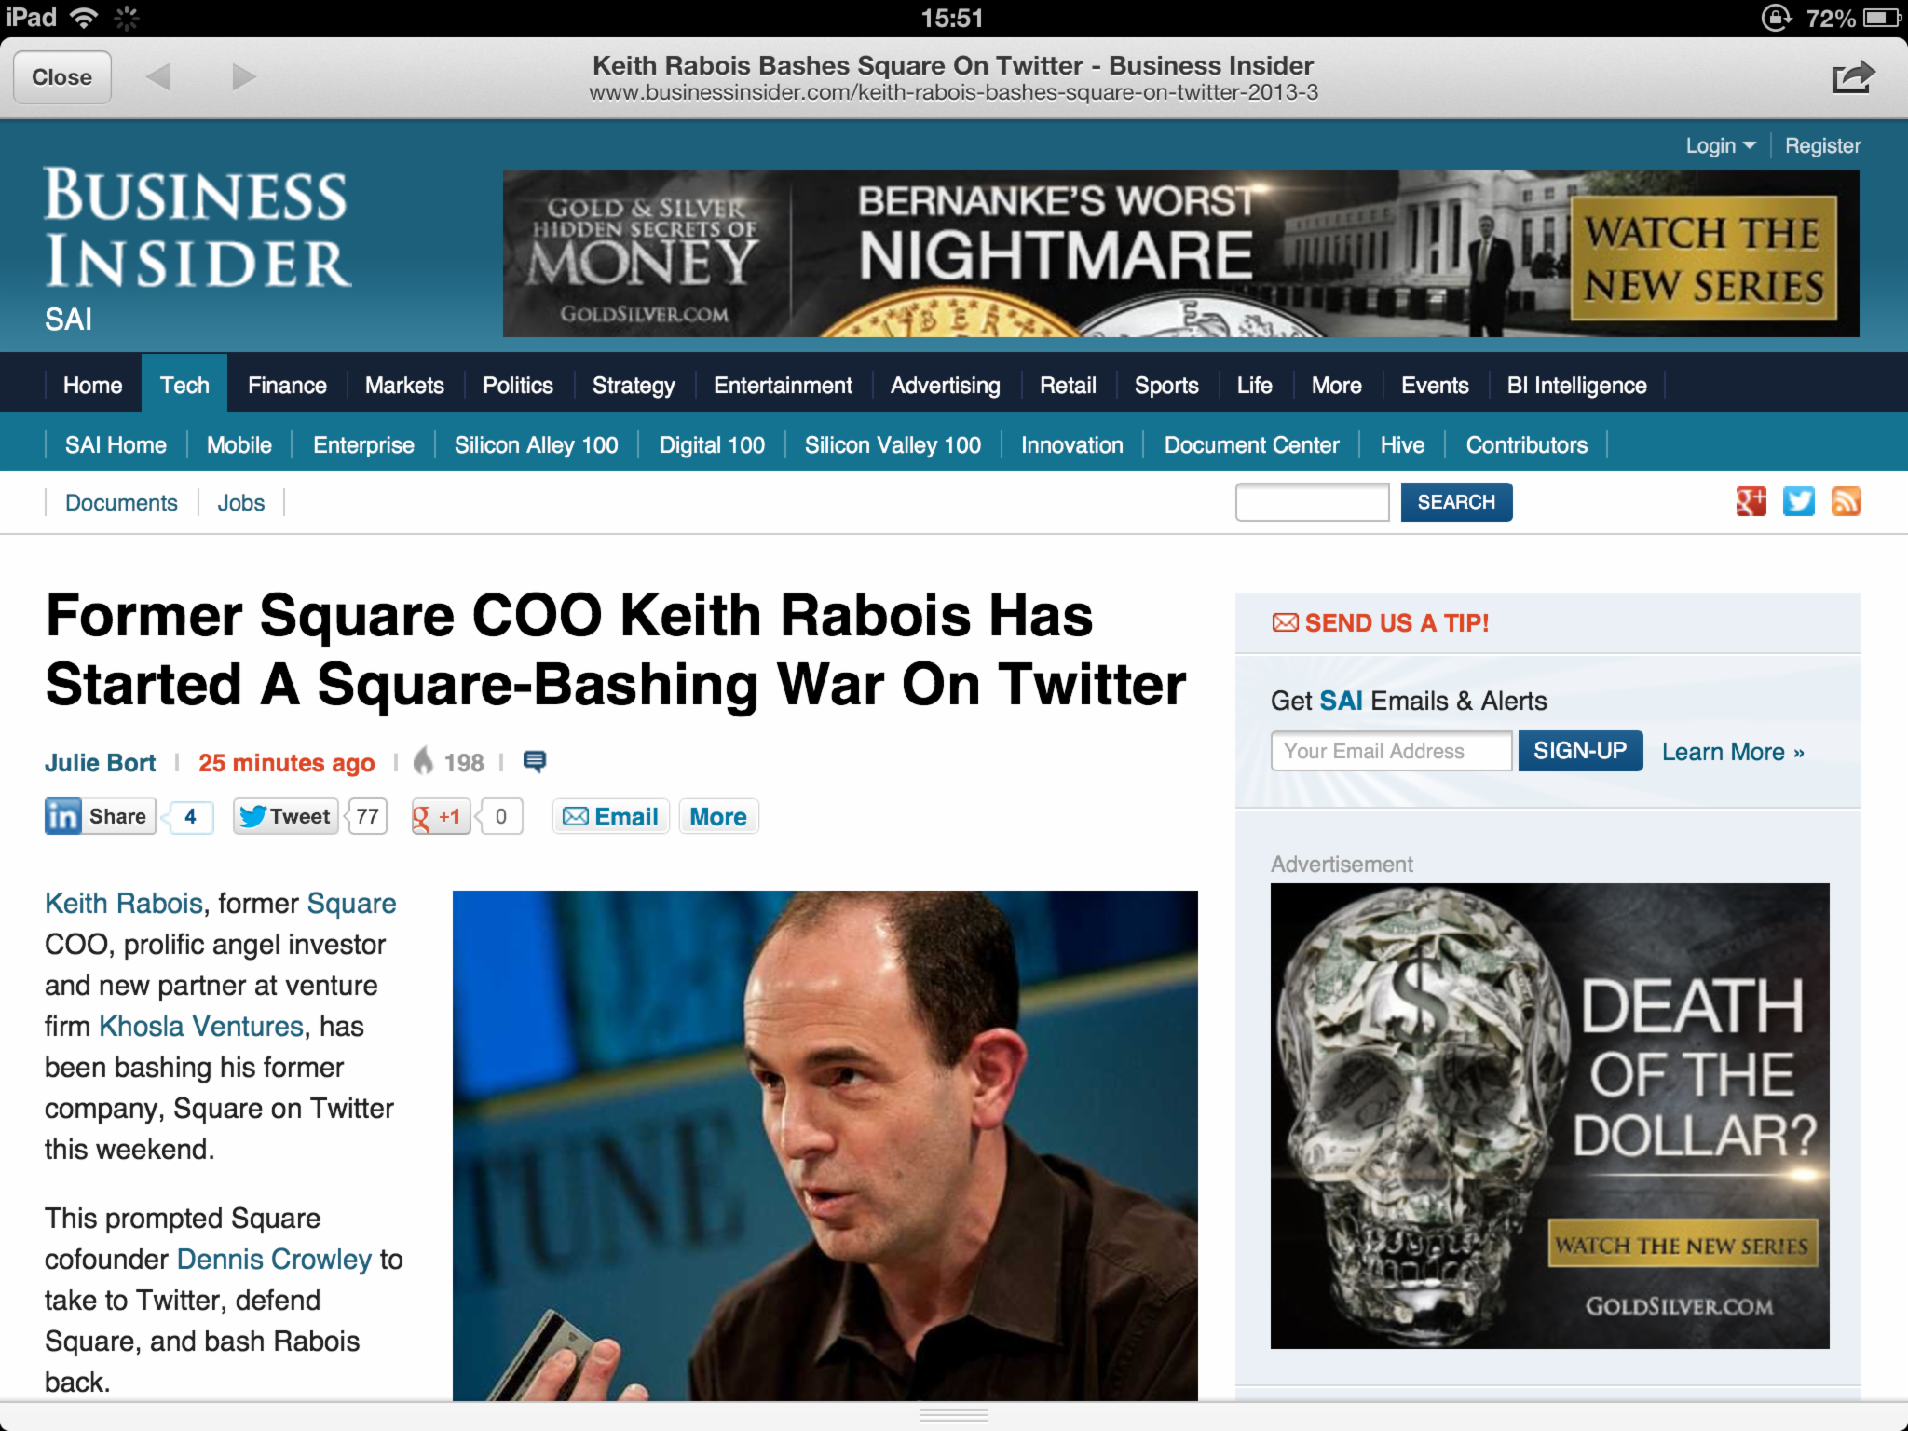 An online article on Business Insider?